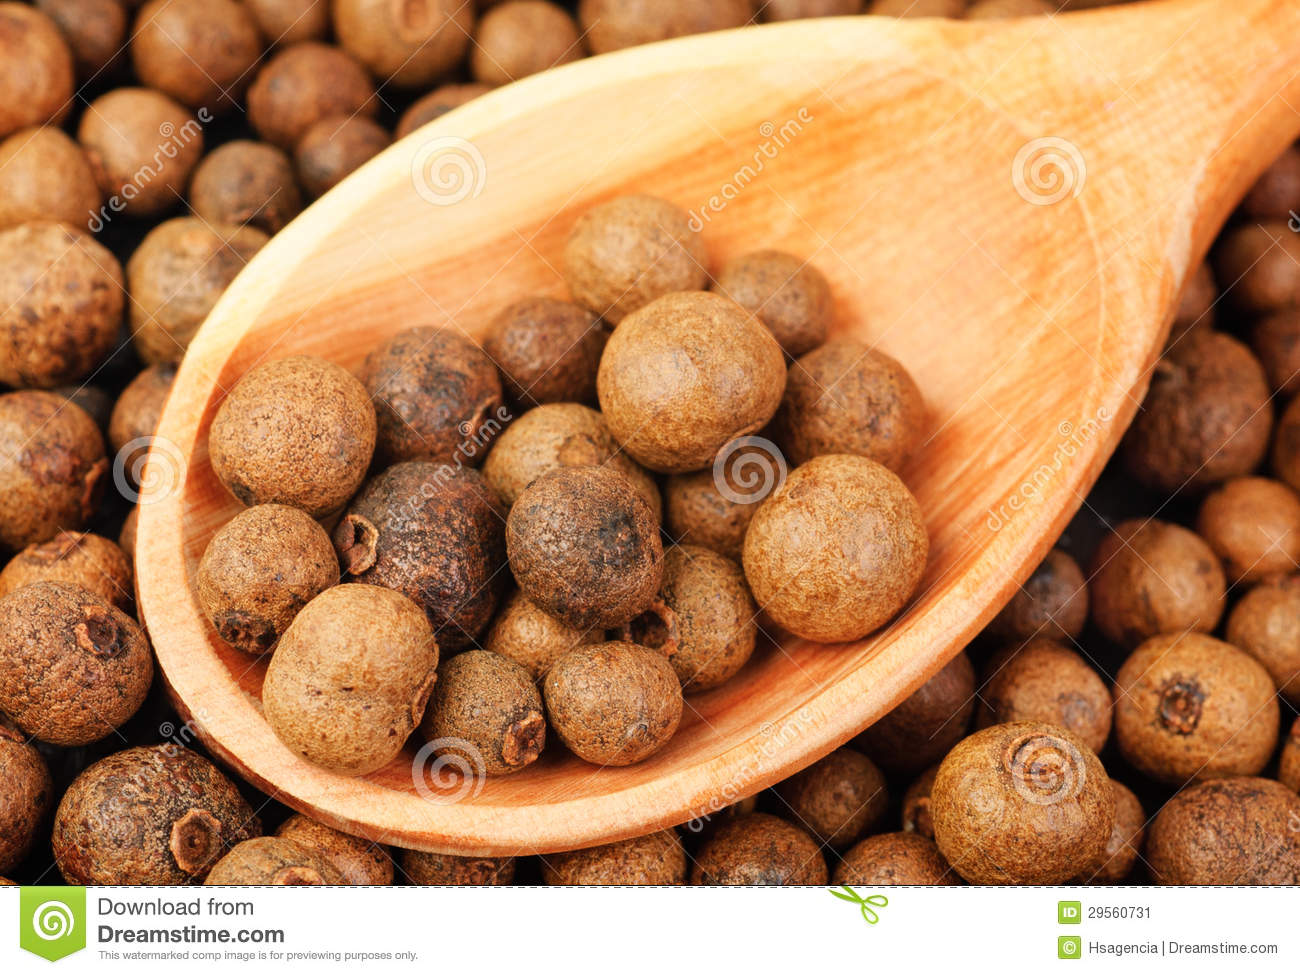 Background texture of whole allspice(jamaica pepper) with wooden spoon Used as a spice in cuisines all over the world. Also used